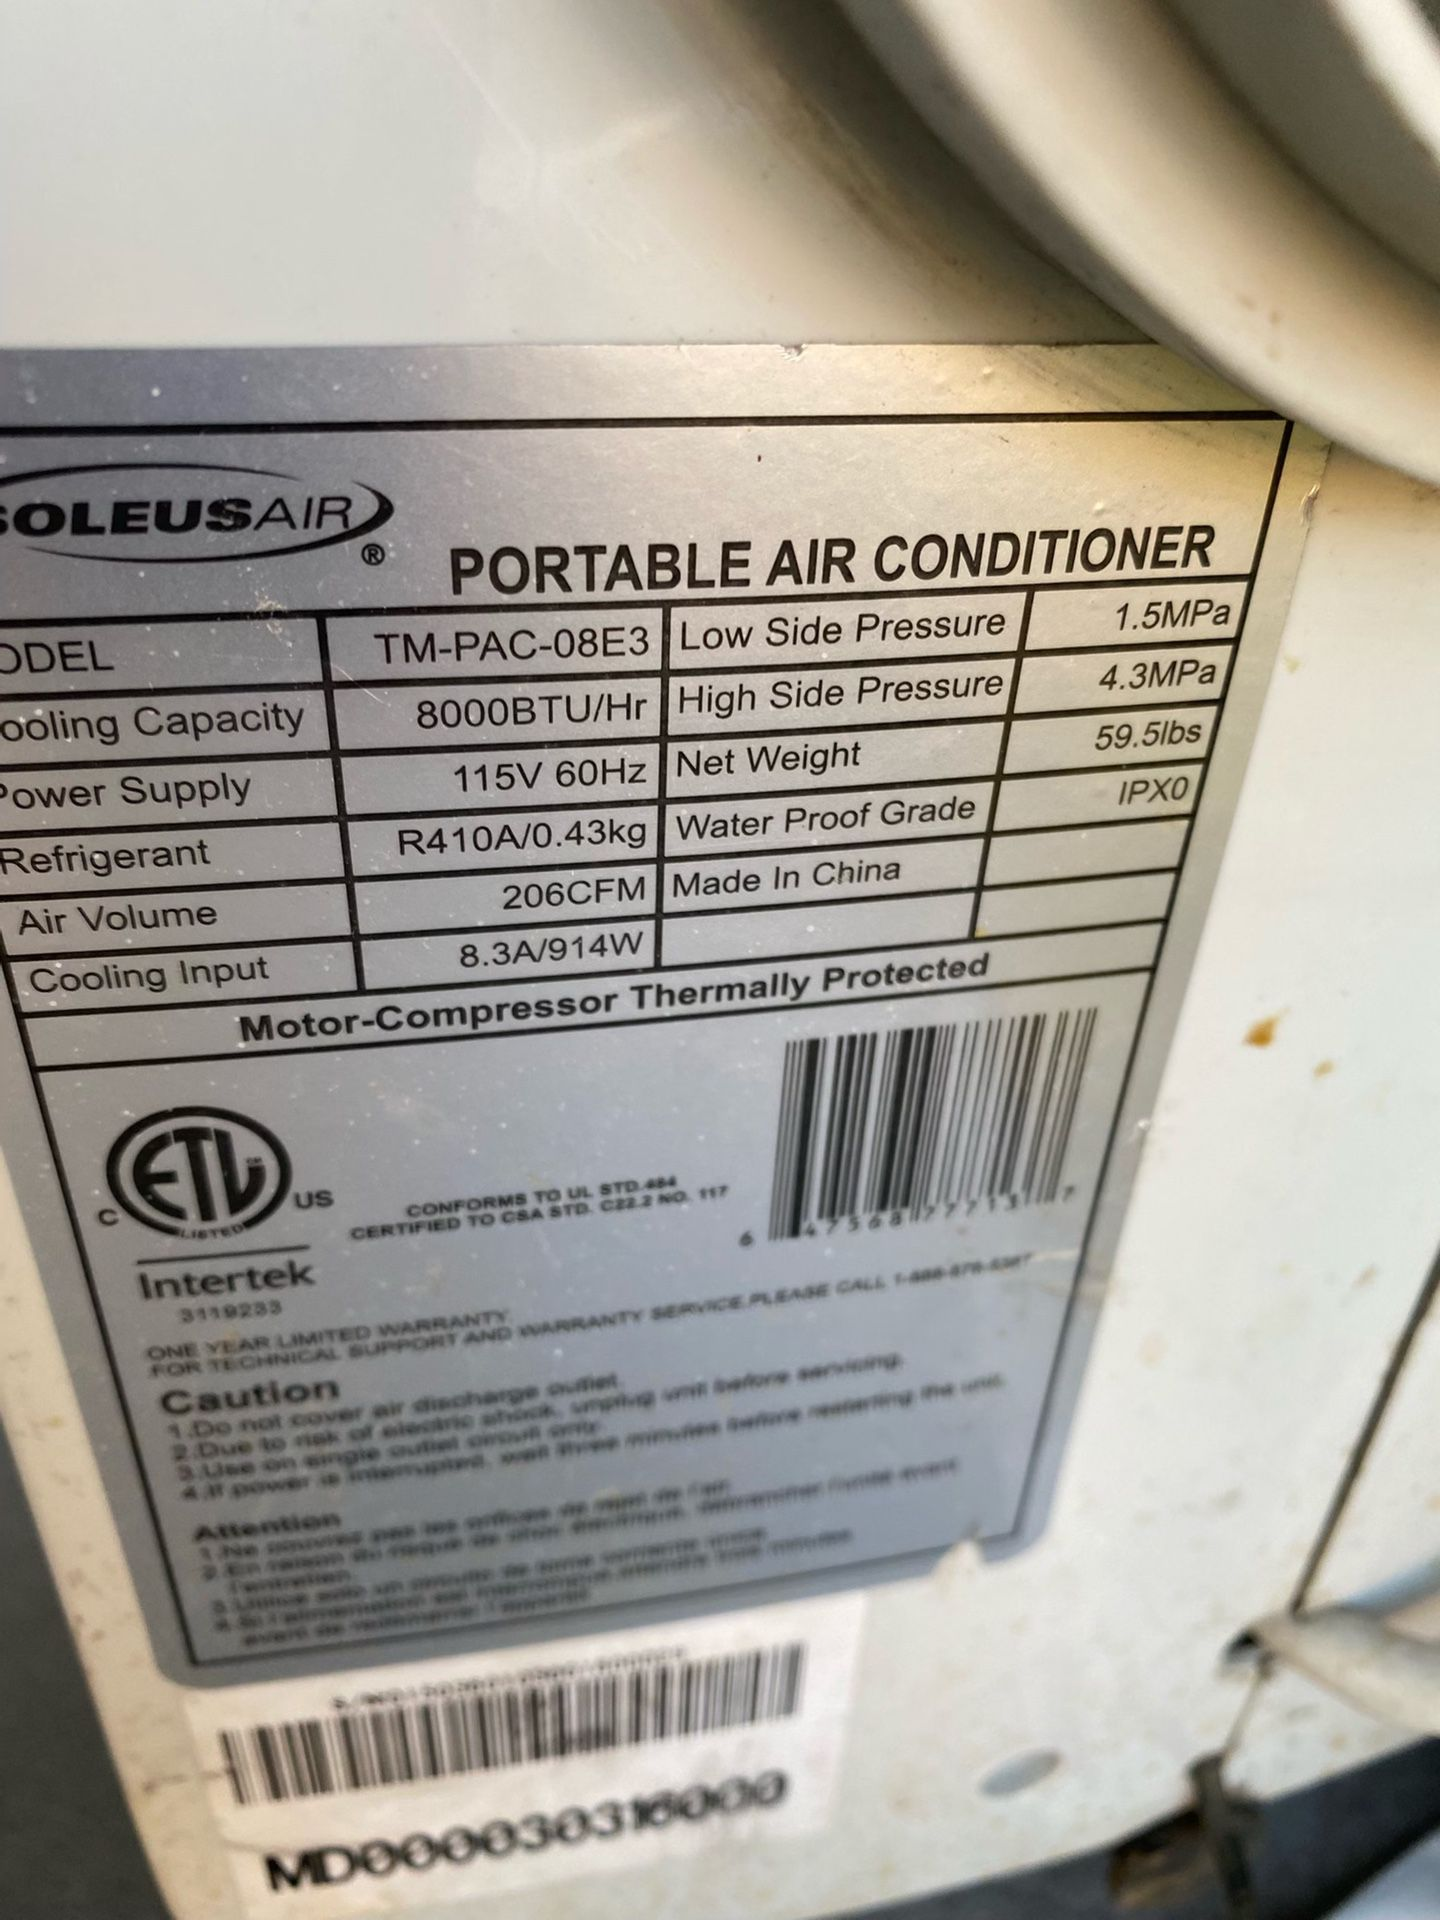 Air conditioner portable with filters